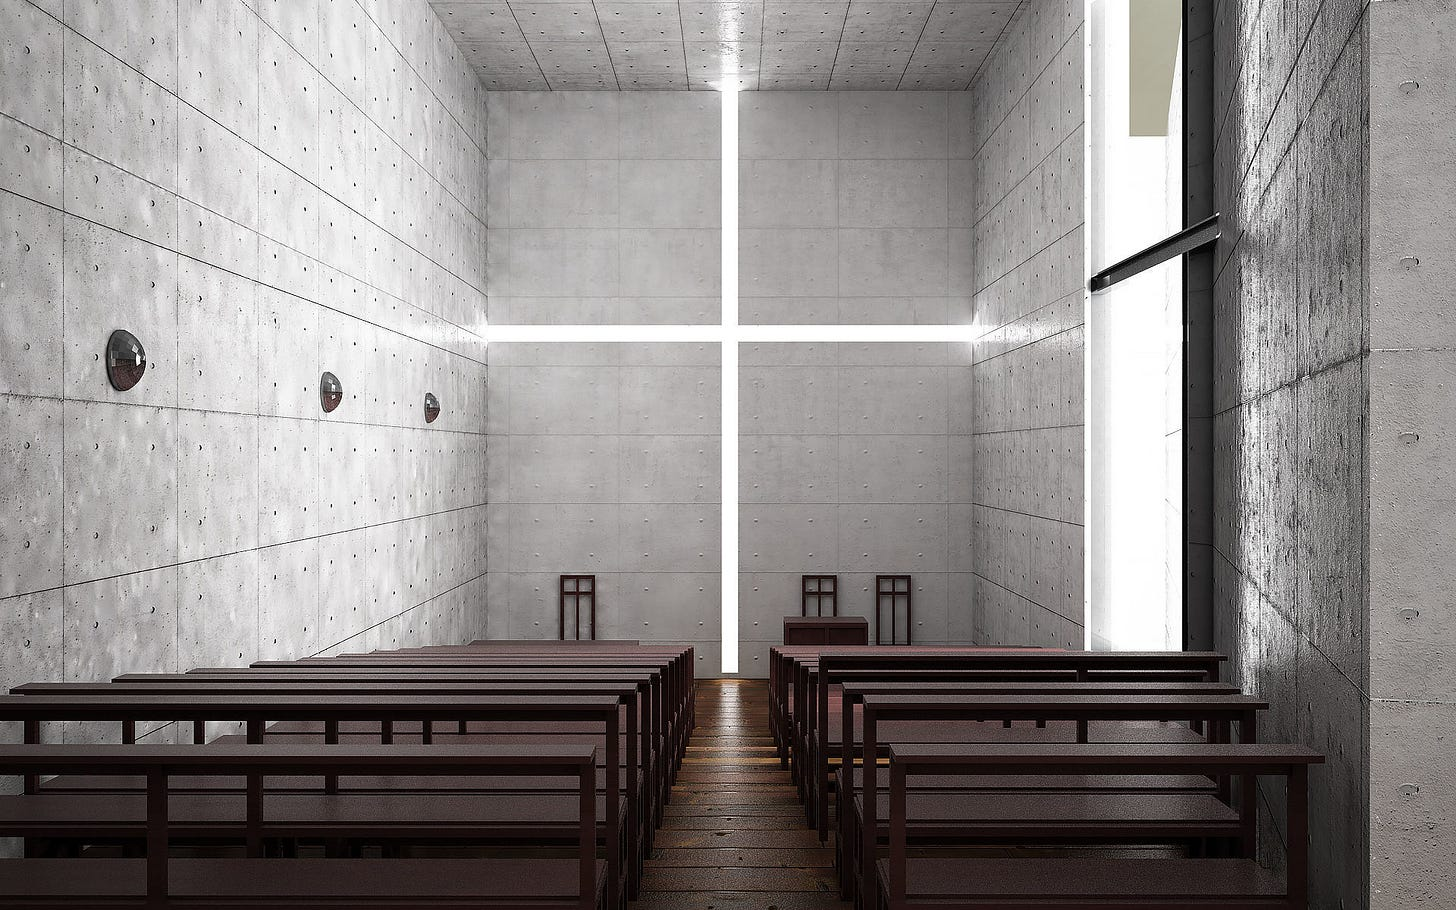 3D Tadao Ando - Church Of Light | CGTrader